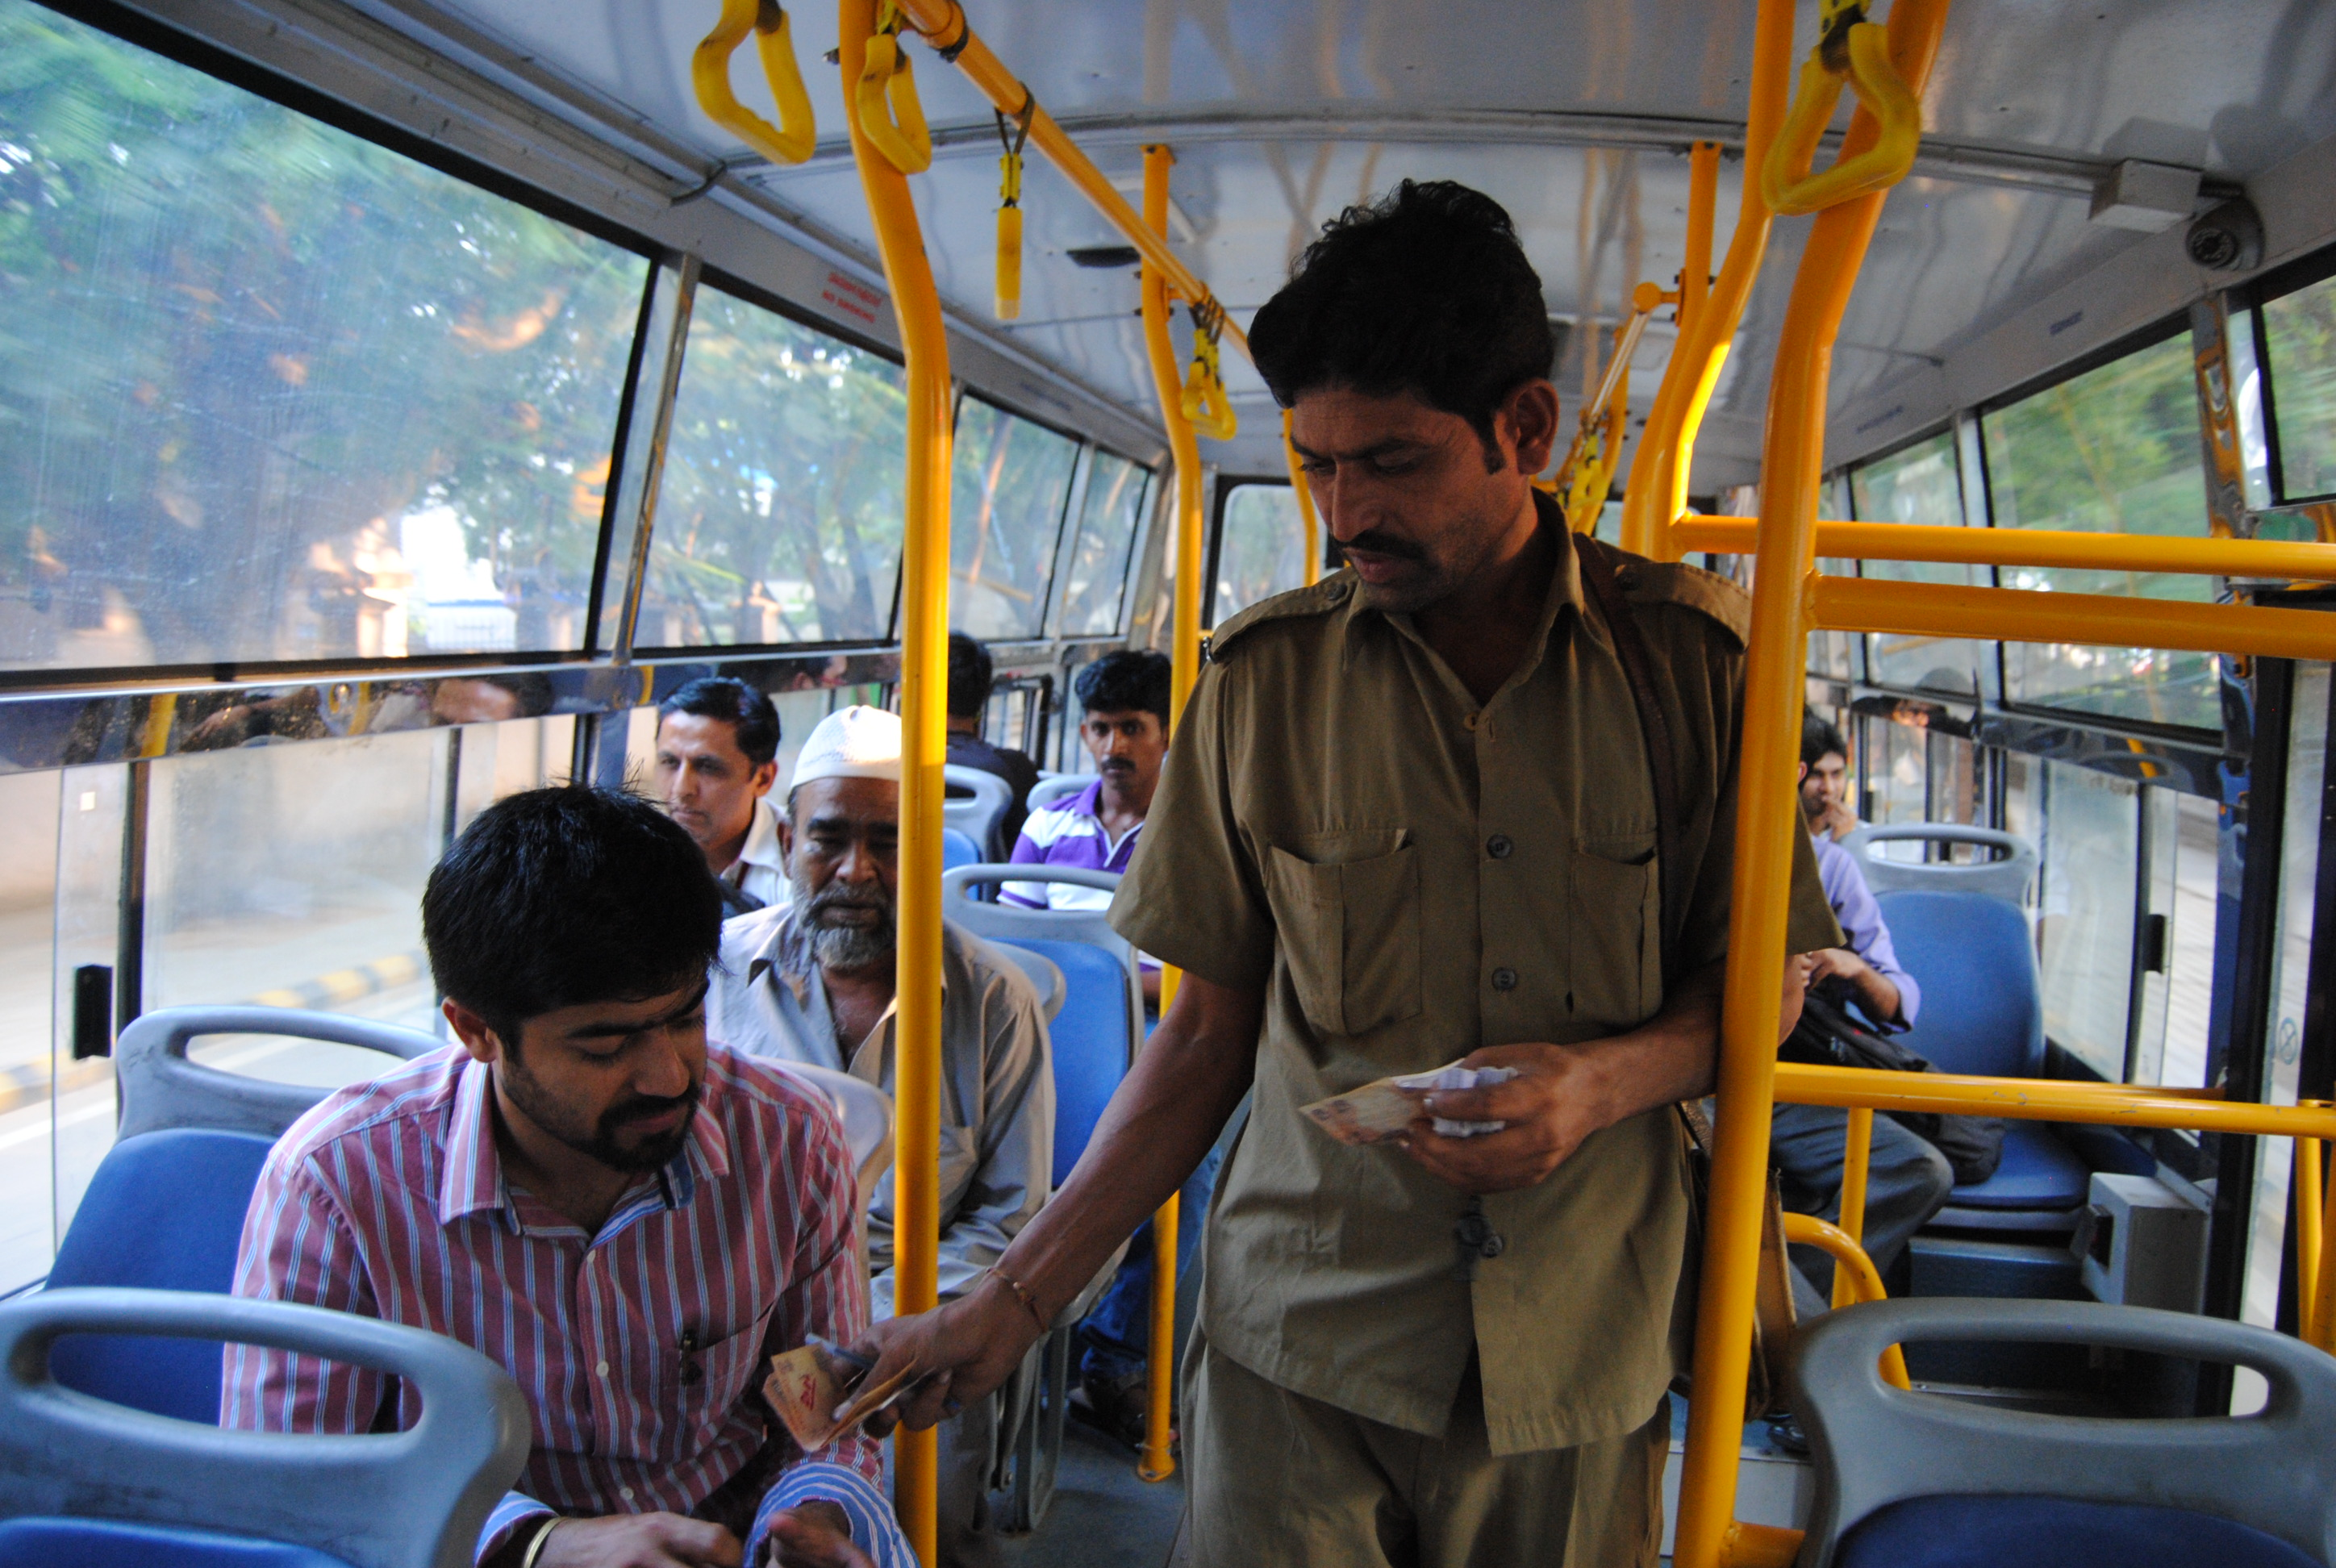 wealth of information can be obtained by understanding India's bus systems